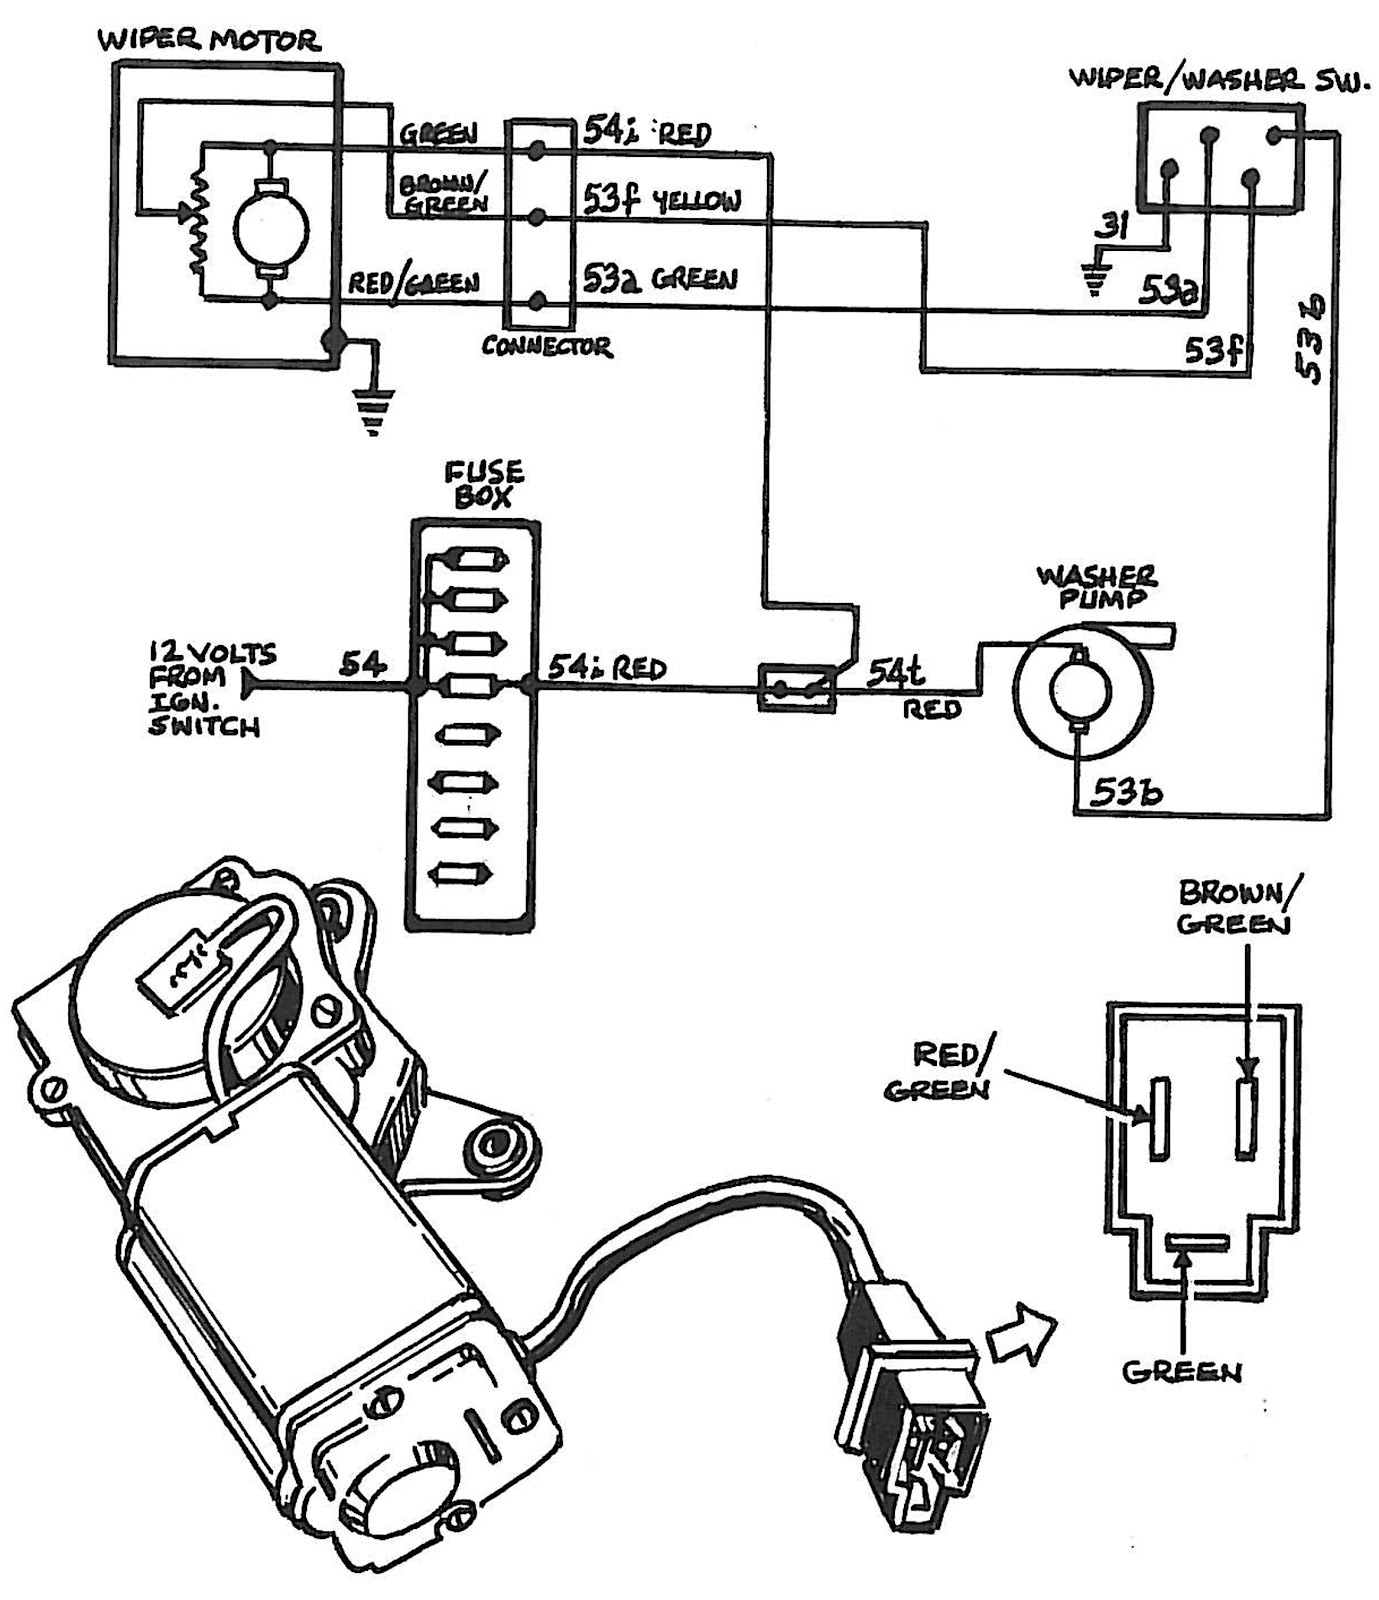 chevrolet wiper wiring diagram